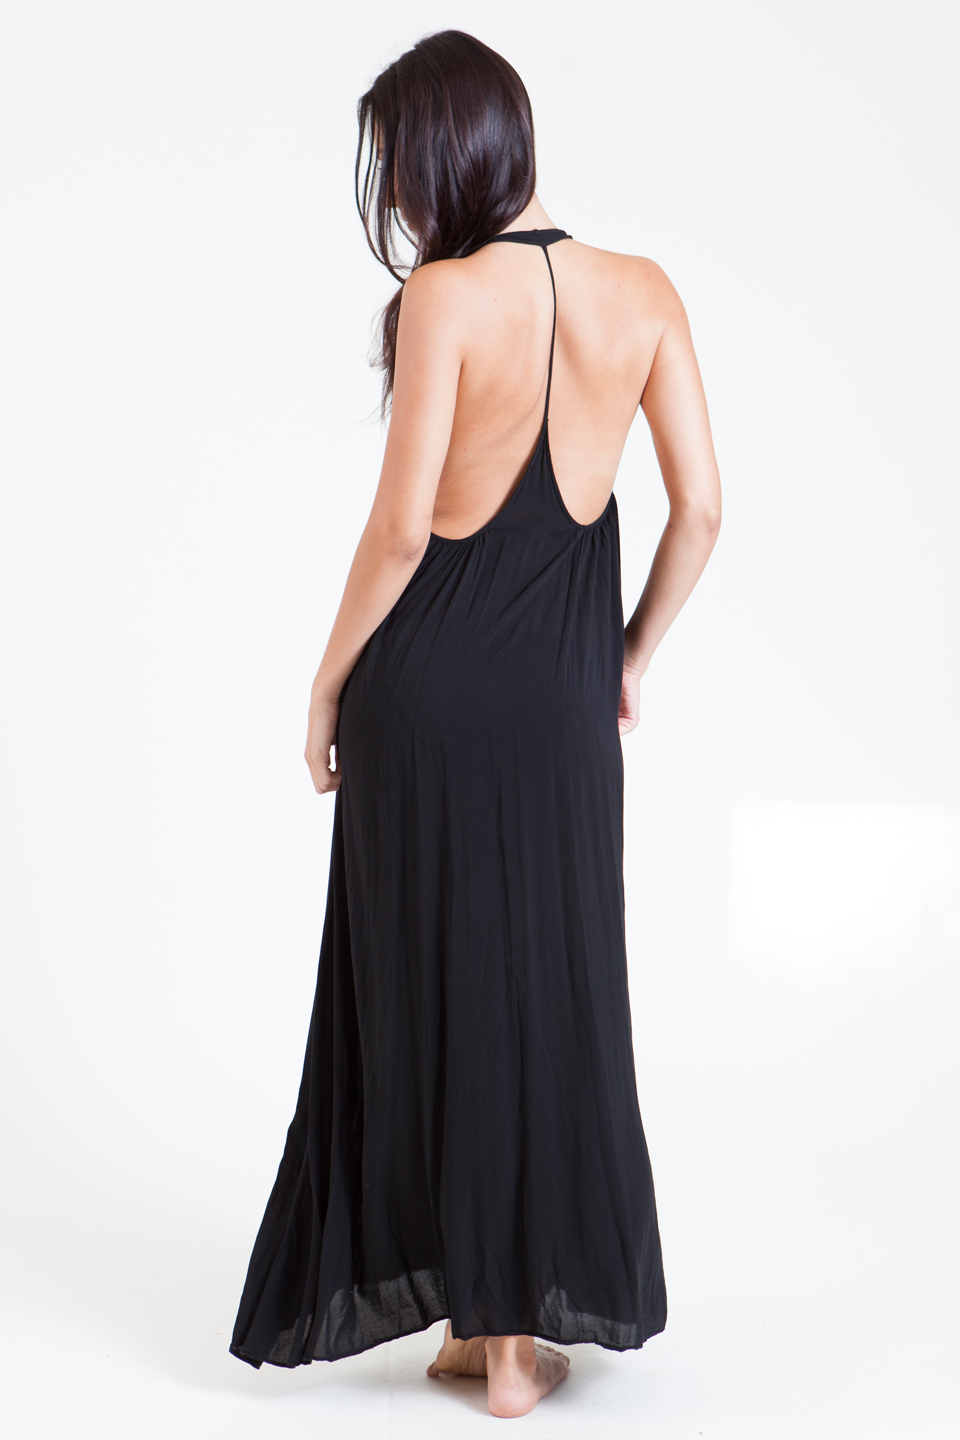 Antigua T-back maxi - black